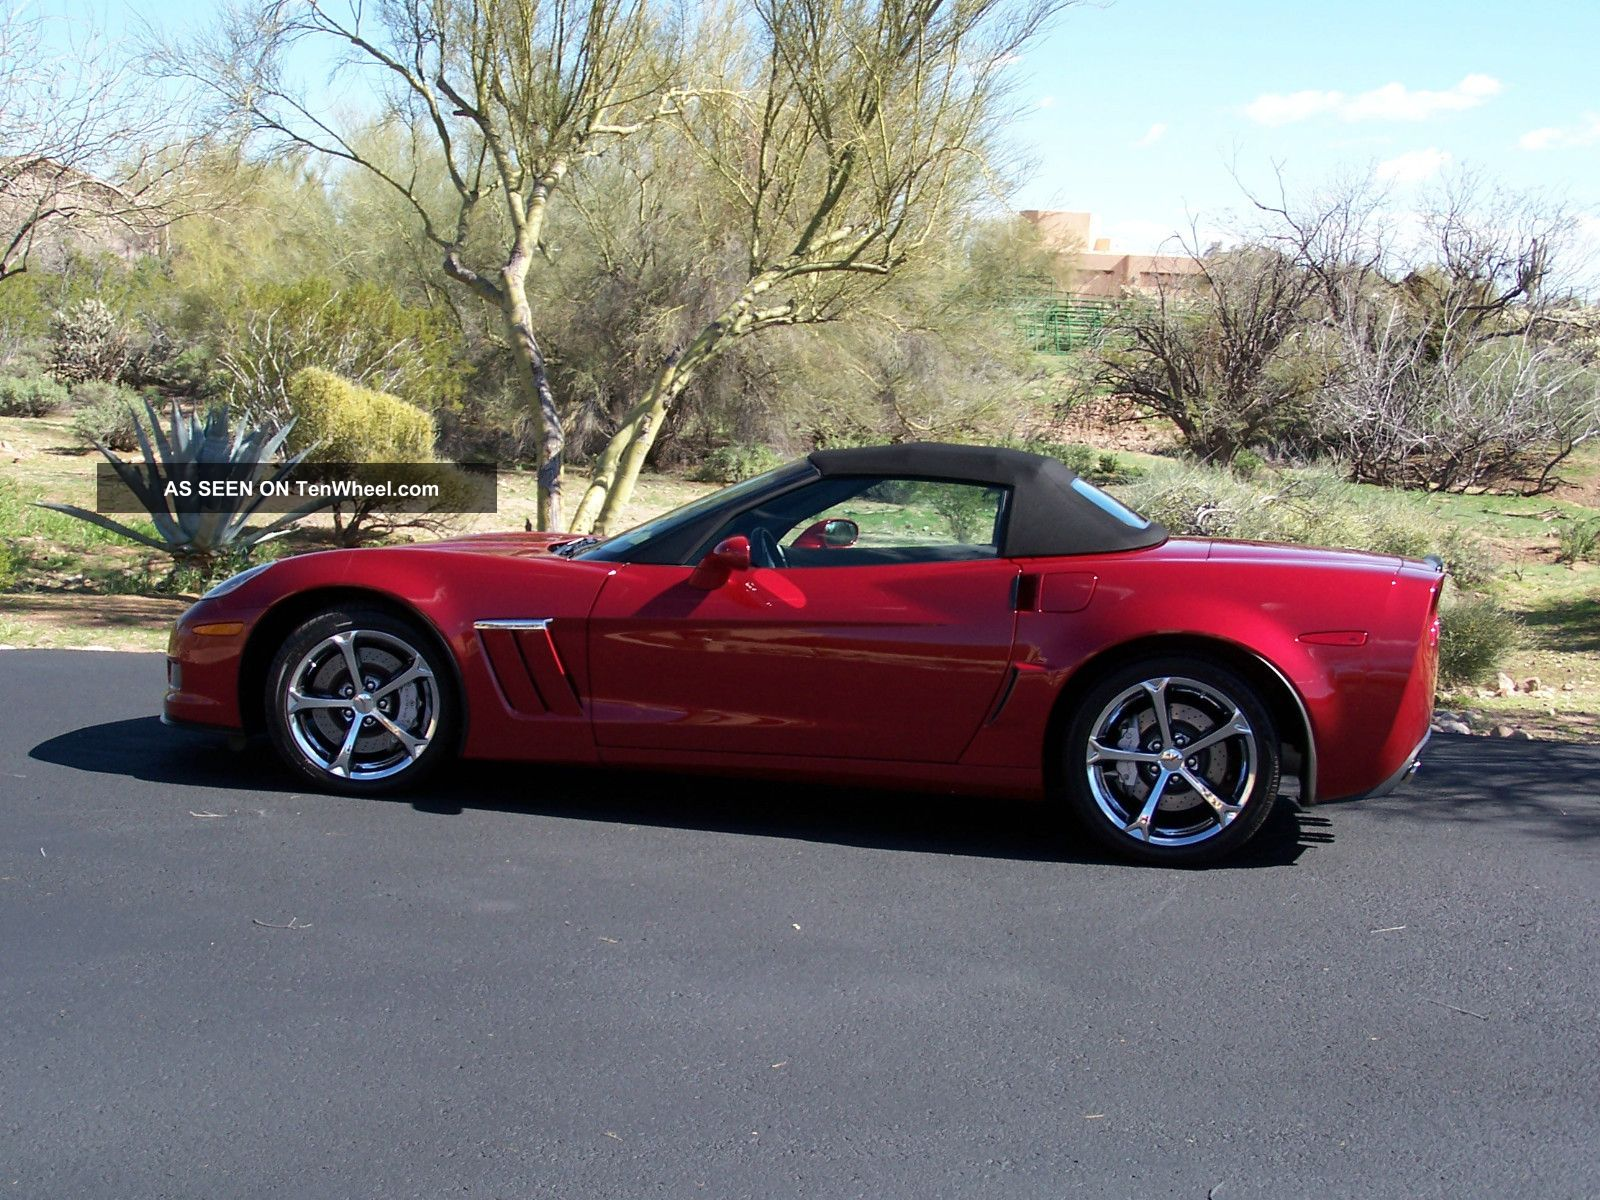 2010 chevrolet corvette grand sport convertible 2 door 6 2l. Cars Review. Best American Auto & Cars Review